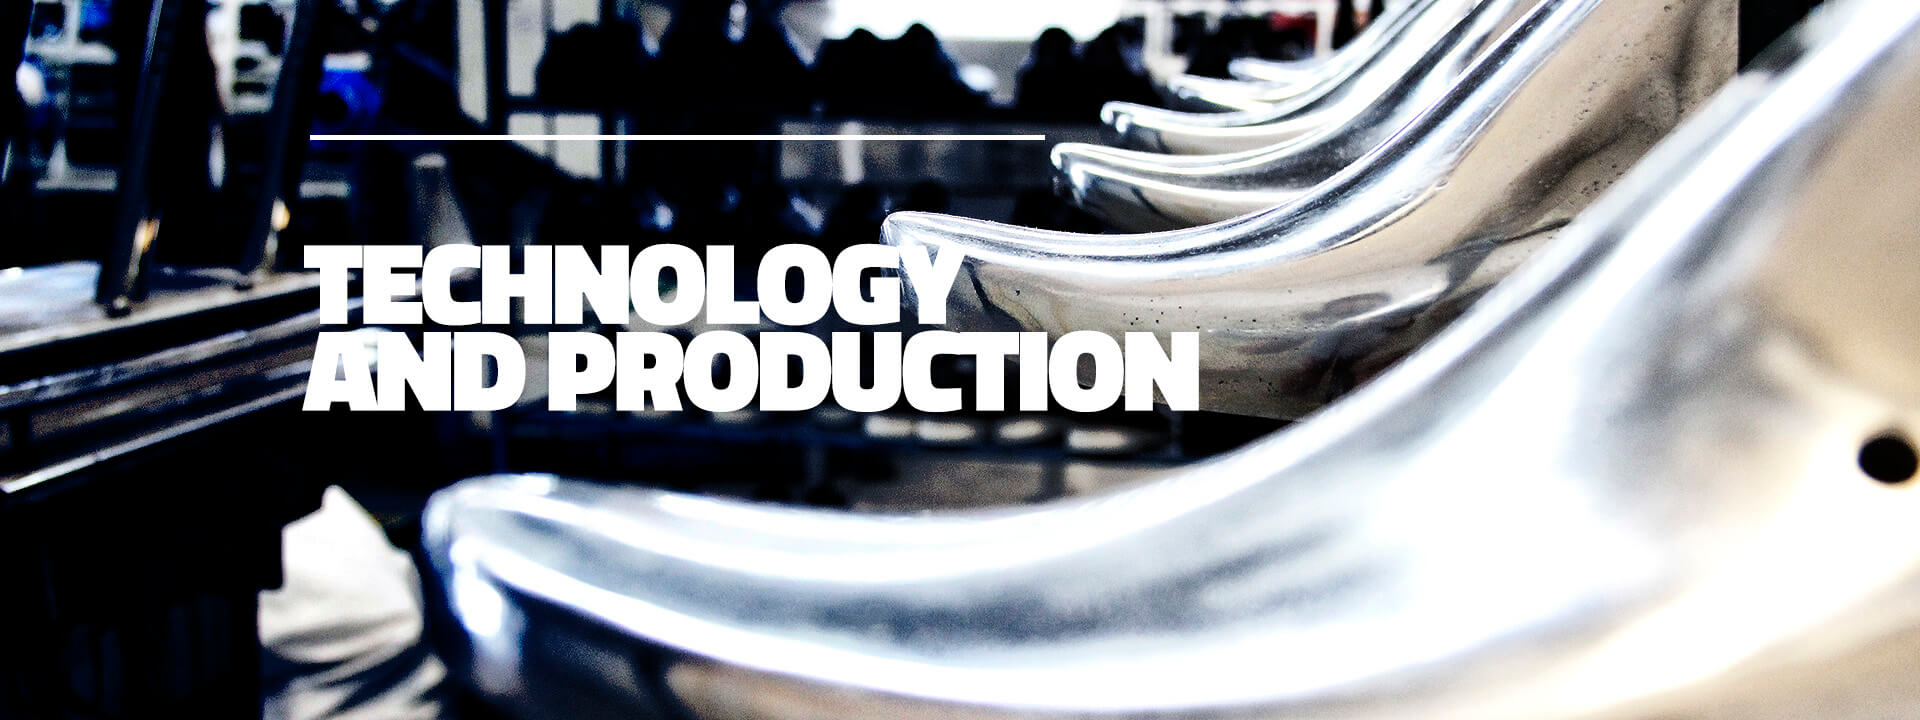 Technology and produtions